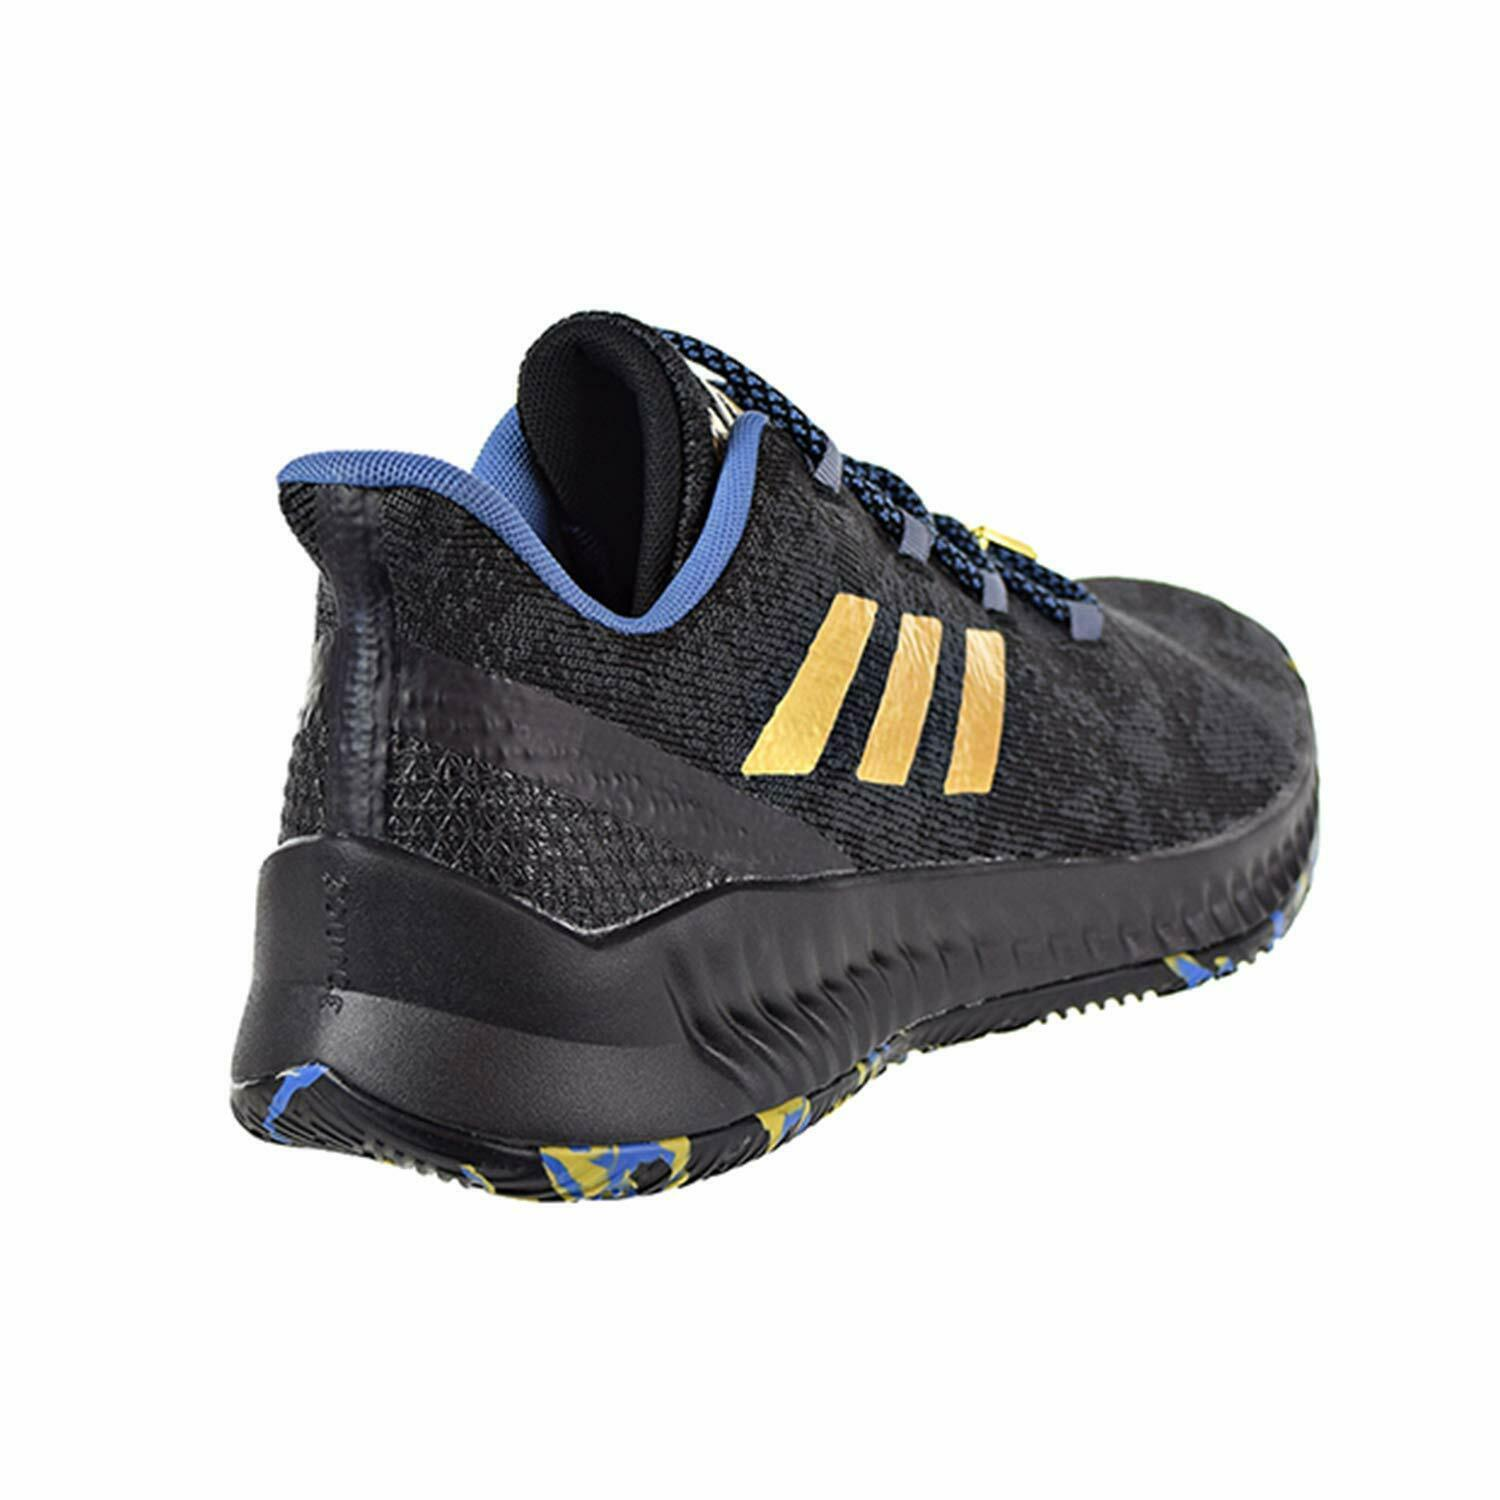 Adidas Harden B/E X MVP James Black Blue Gold Mens Basketball Shoes F36813 image 3